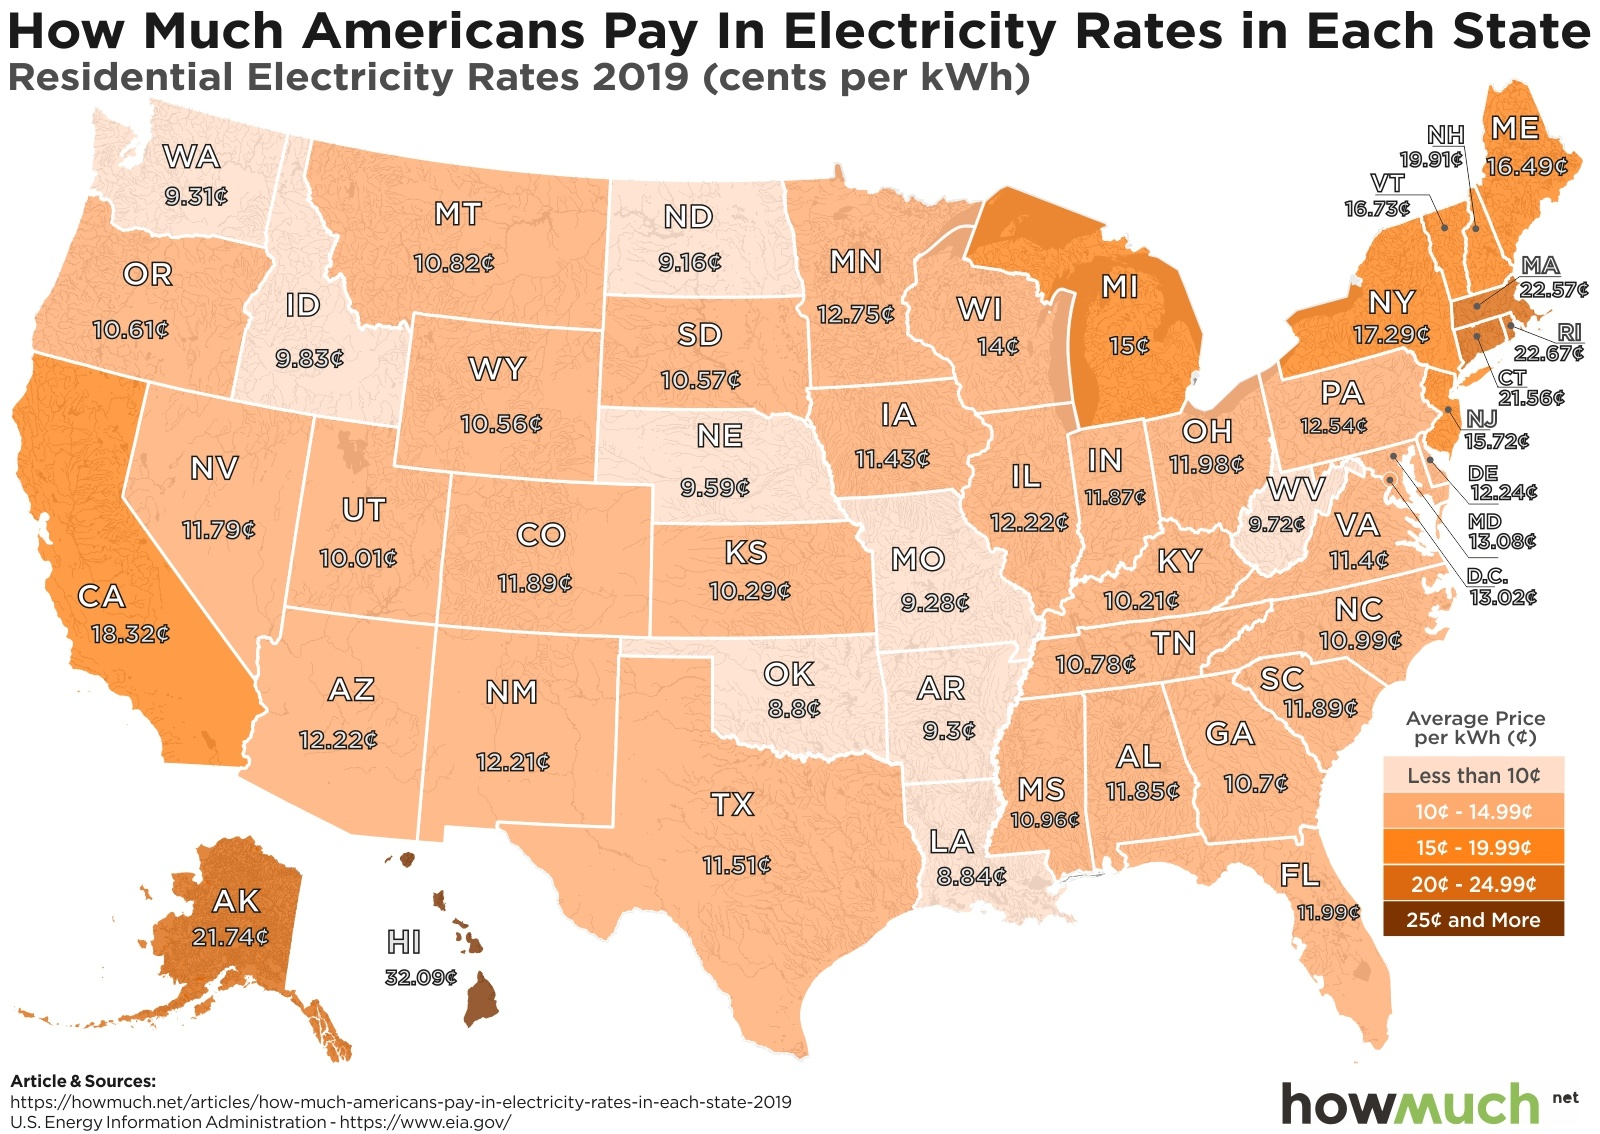 Residential Electricity Rates by State